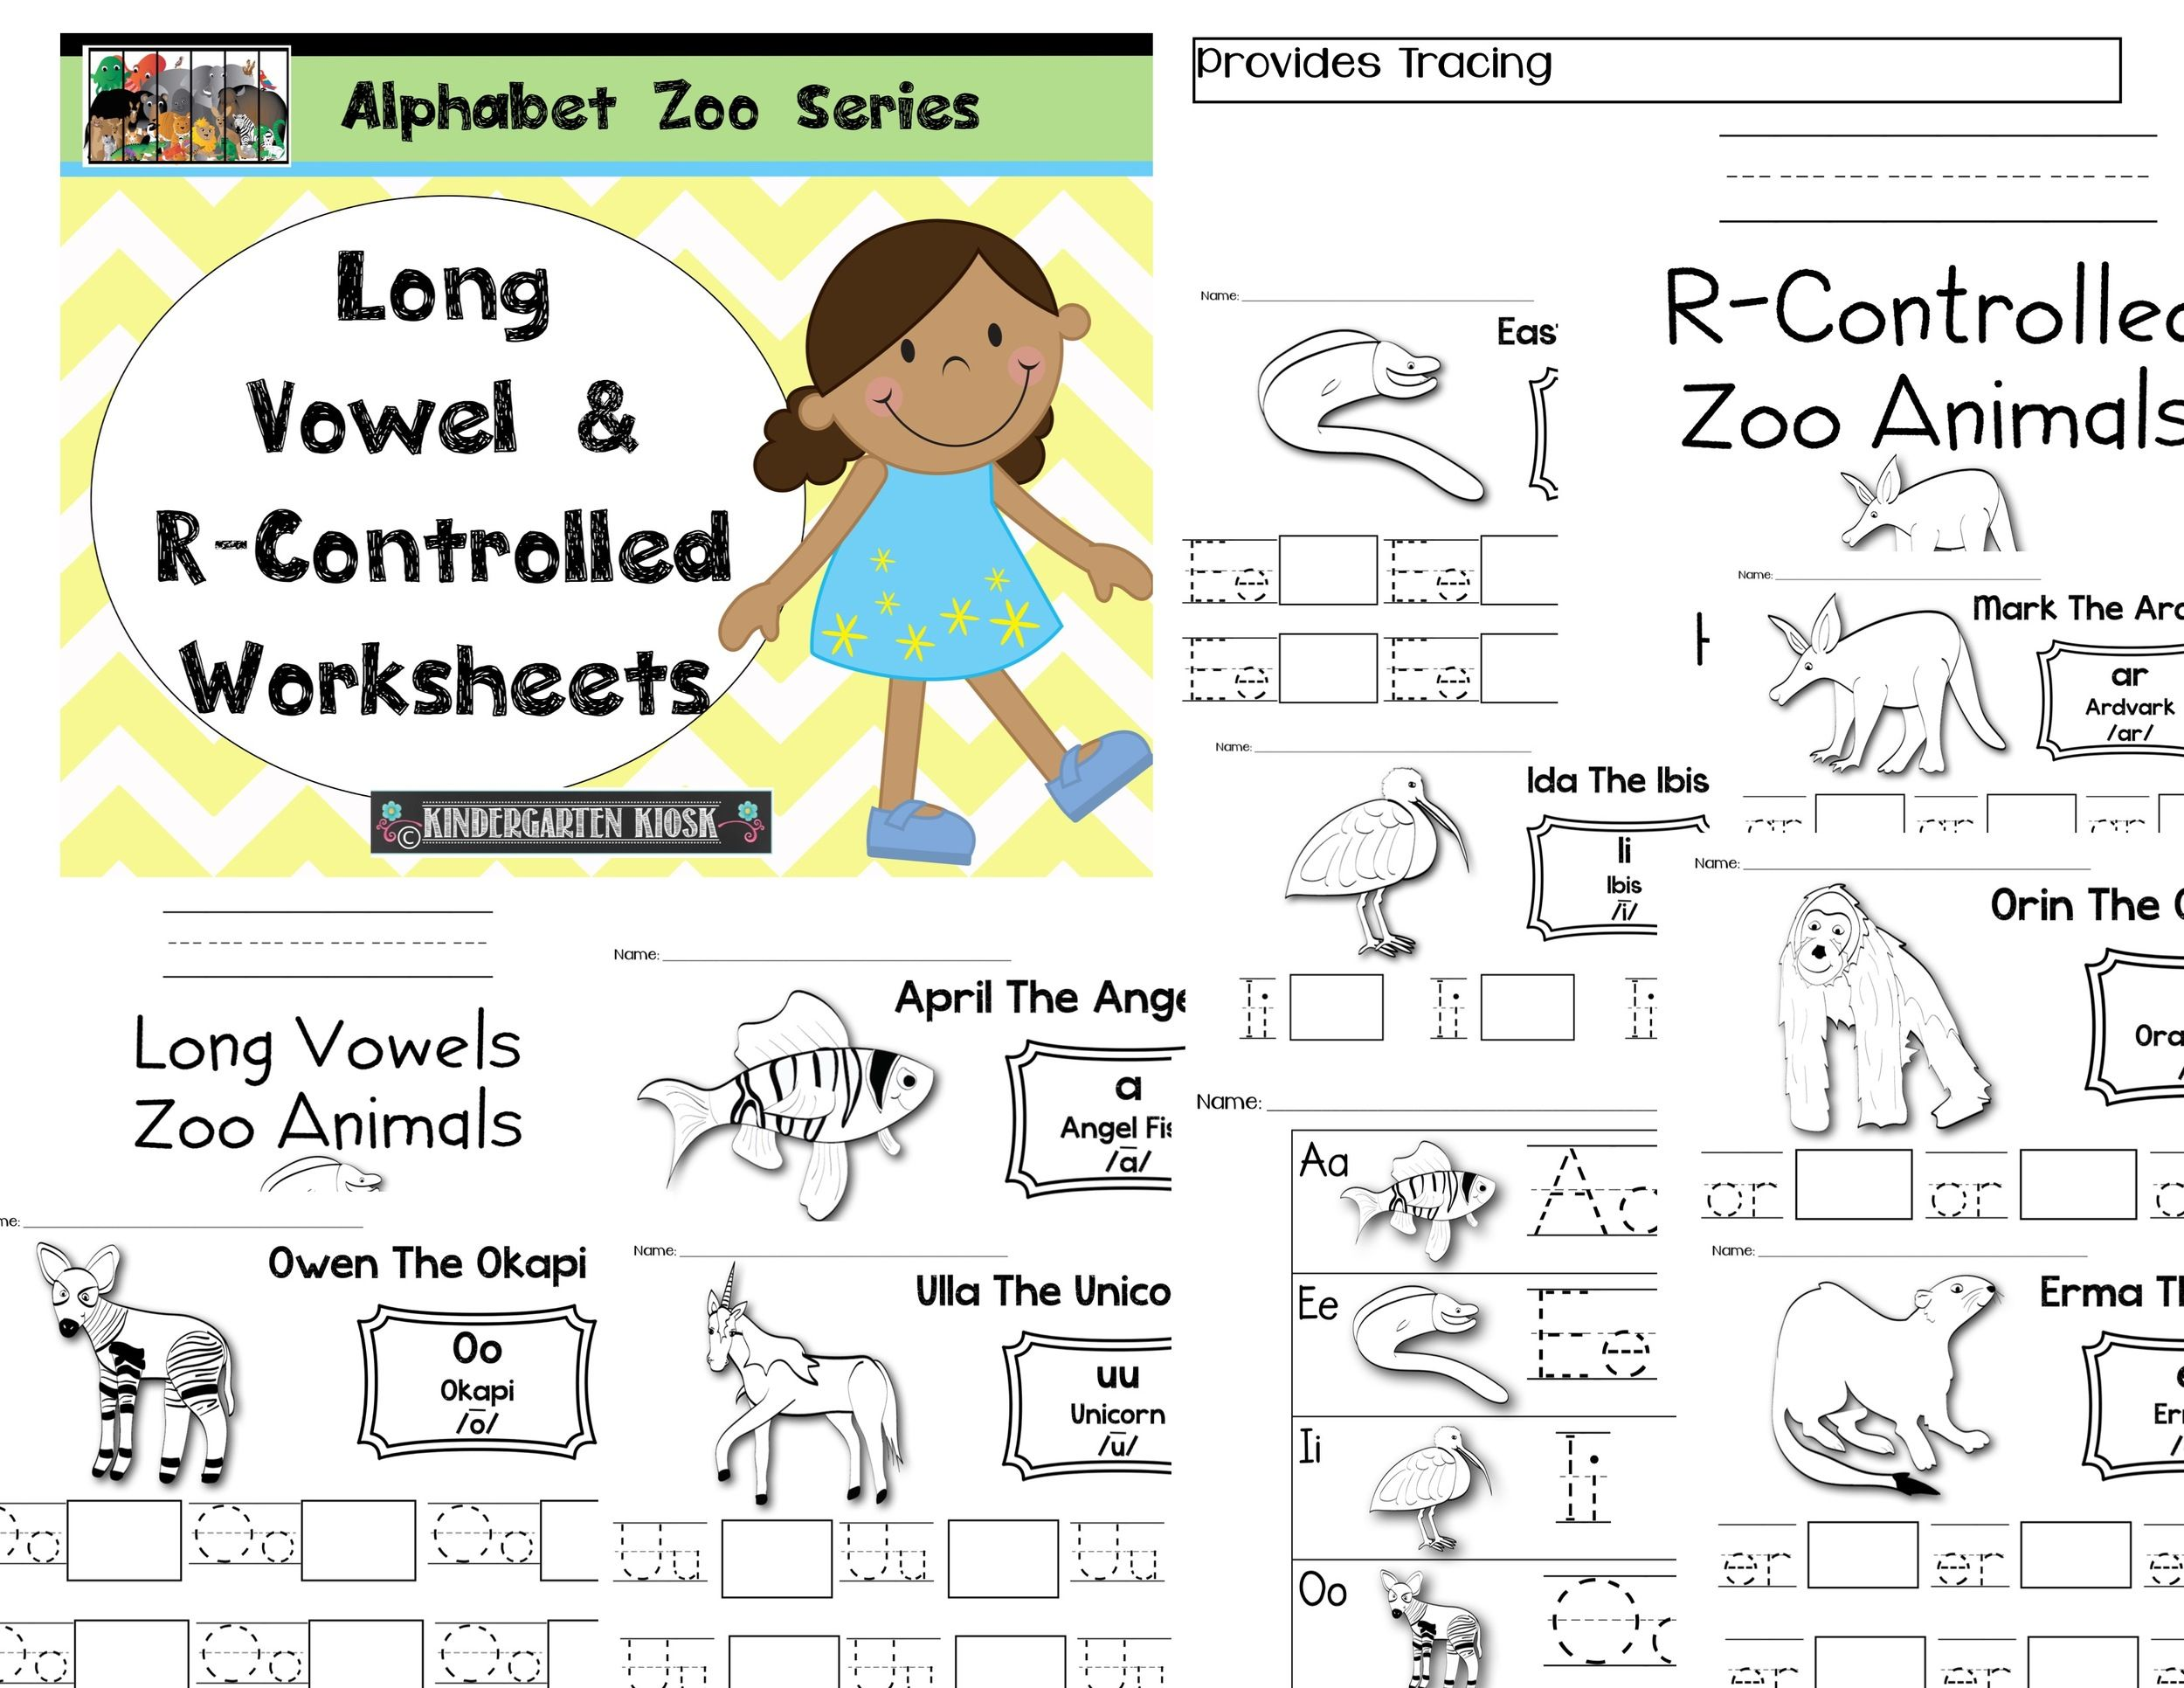 worksheet R Controlled Worksheets zoo long vowelr controlled handwriting worksheets alphabet worksheets